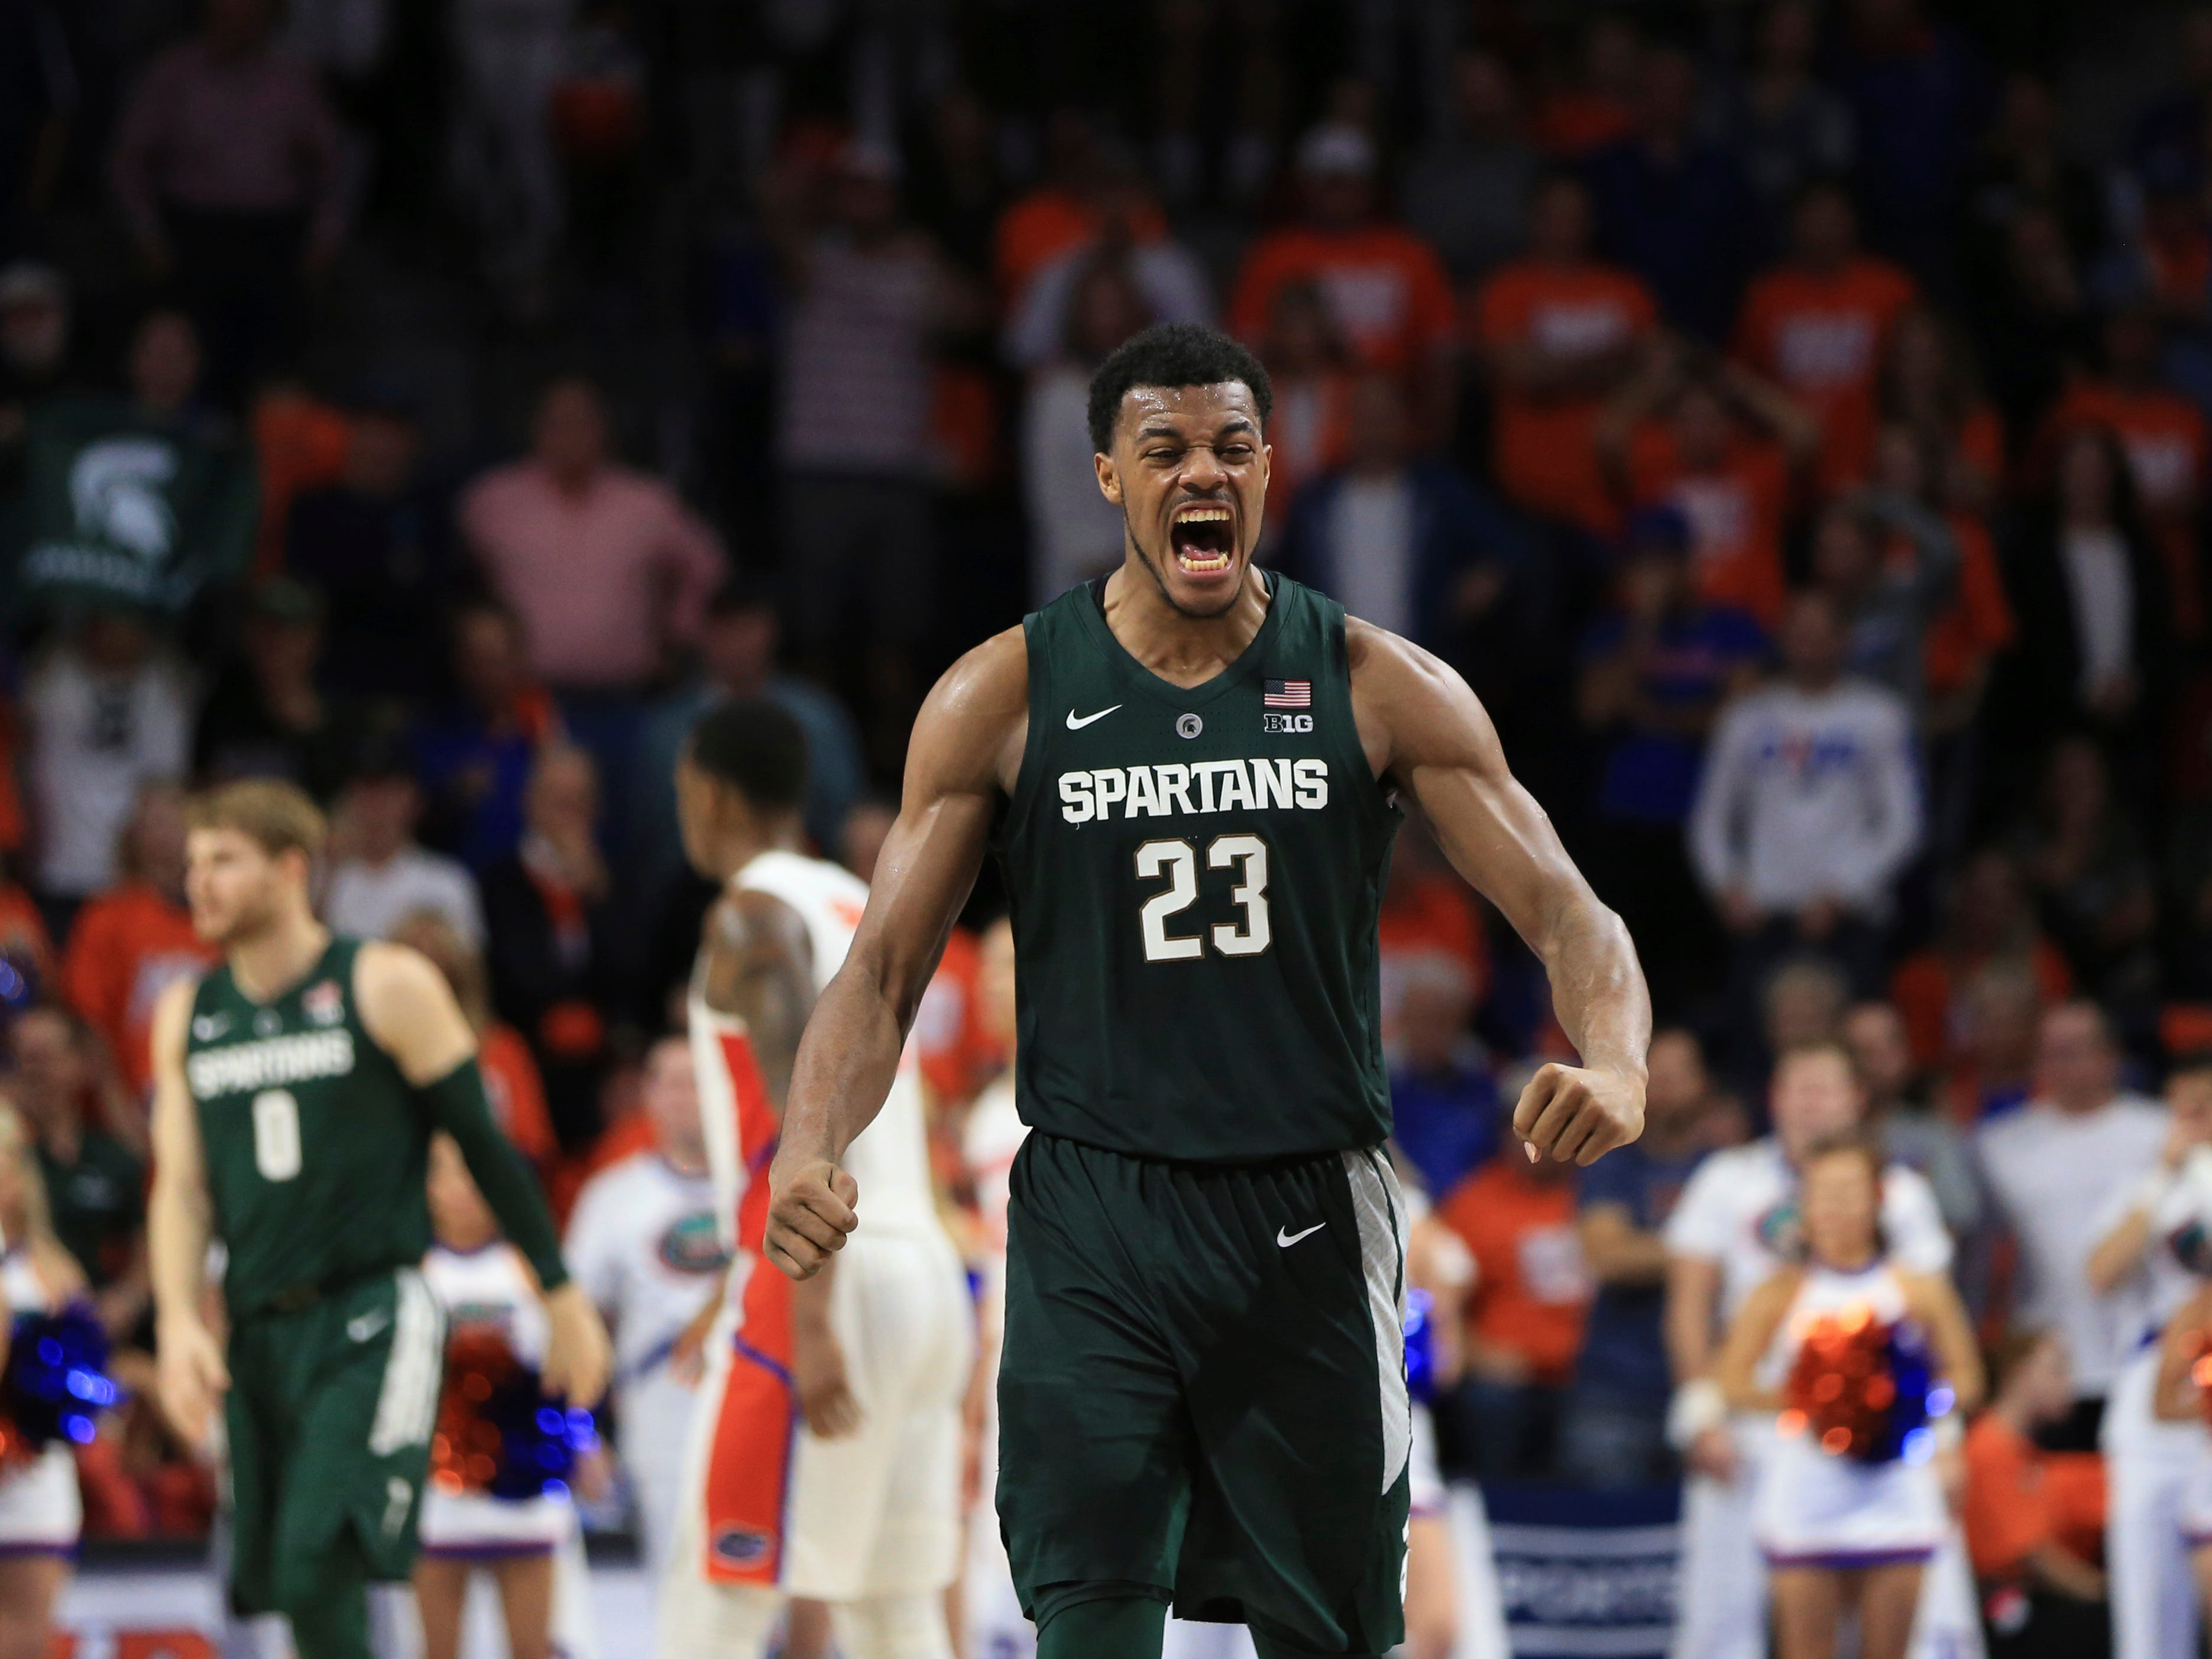 Michigan State forward Xavier Tillman (23) celebrates after a dunk by forward Kyle Ahrens  late in the second half of an NCAA college basketball game against Florida, Saturday, Dec. 8, 2018, in Gainesville, Fla. Michigan State defeated Florida 63-59.